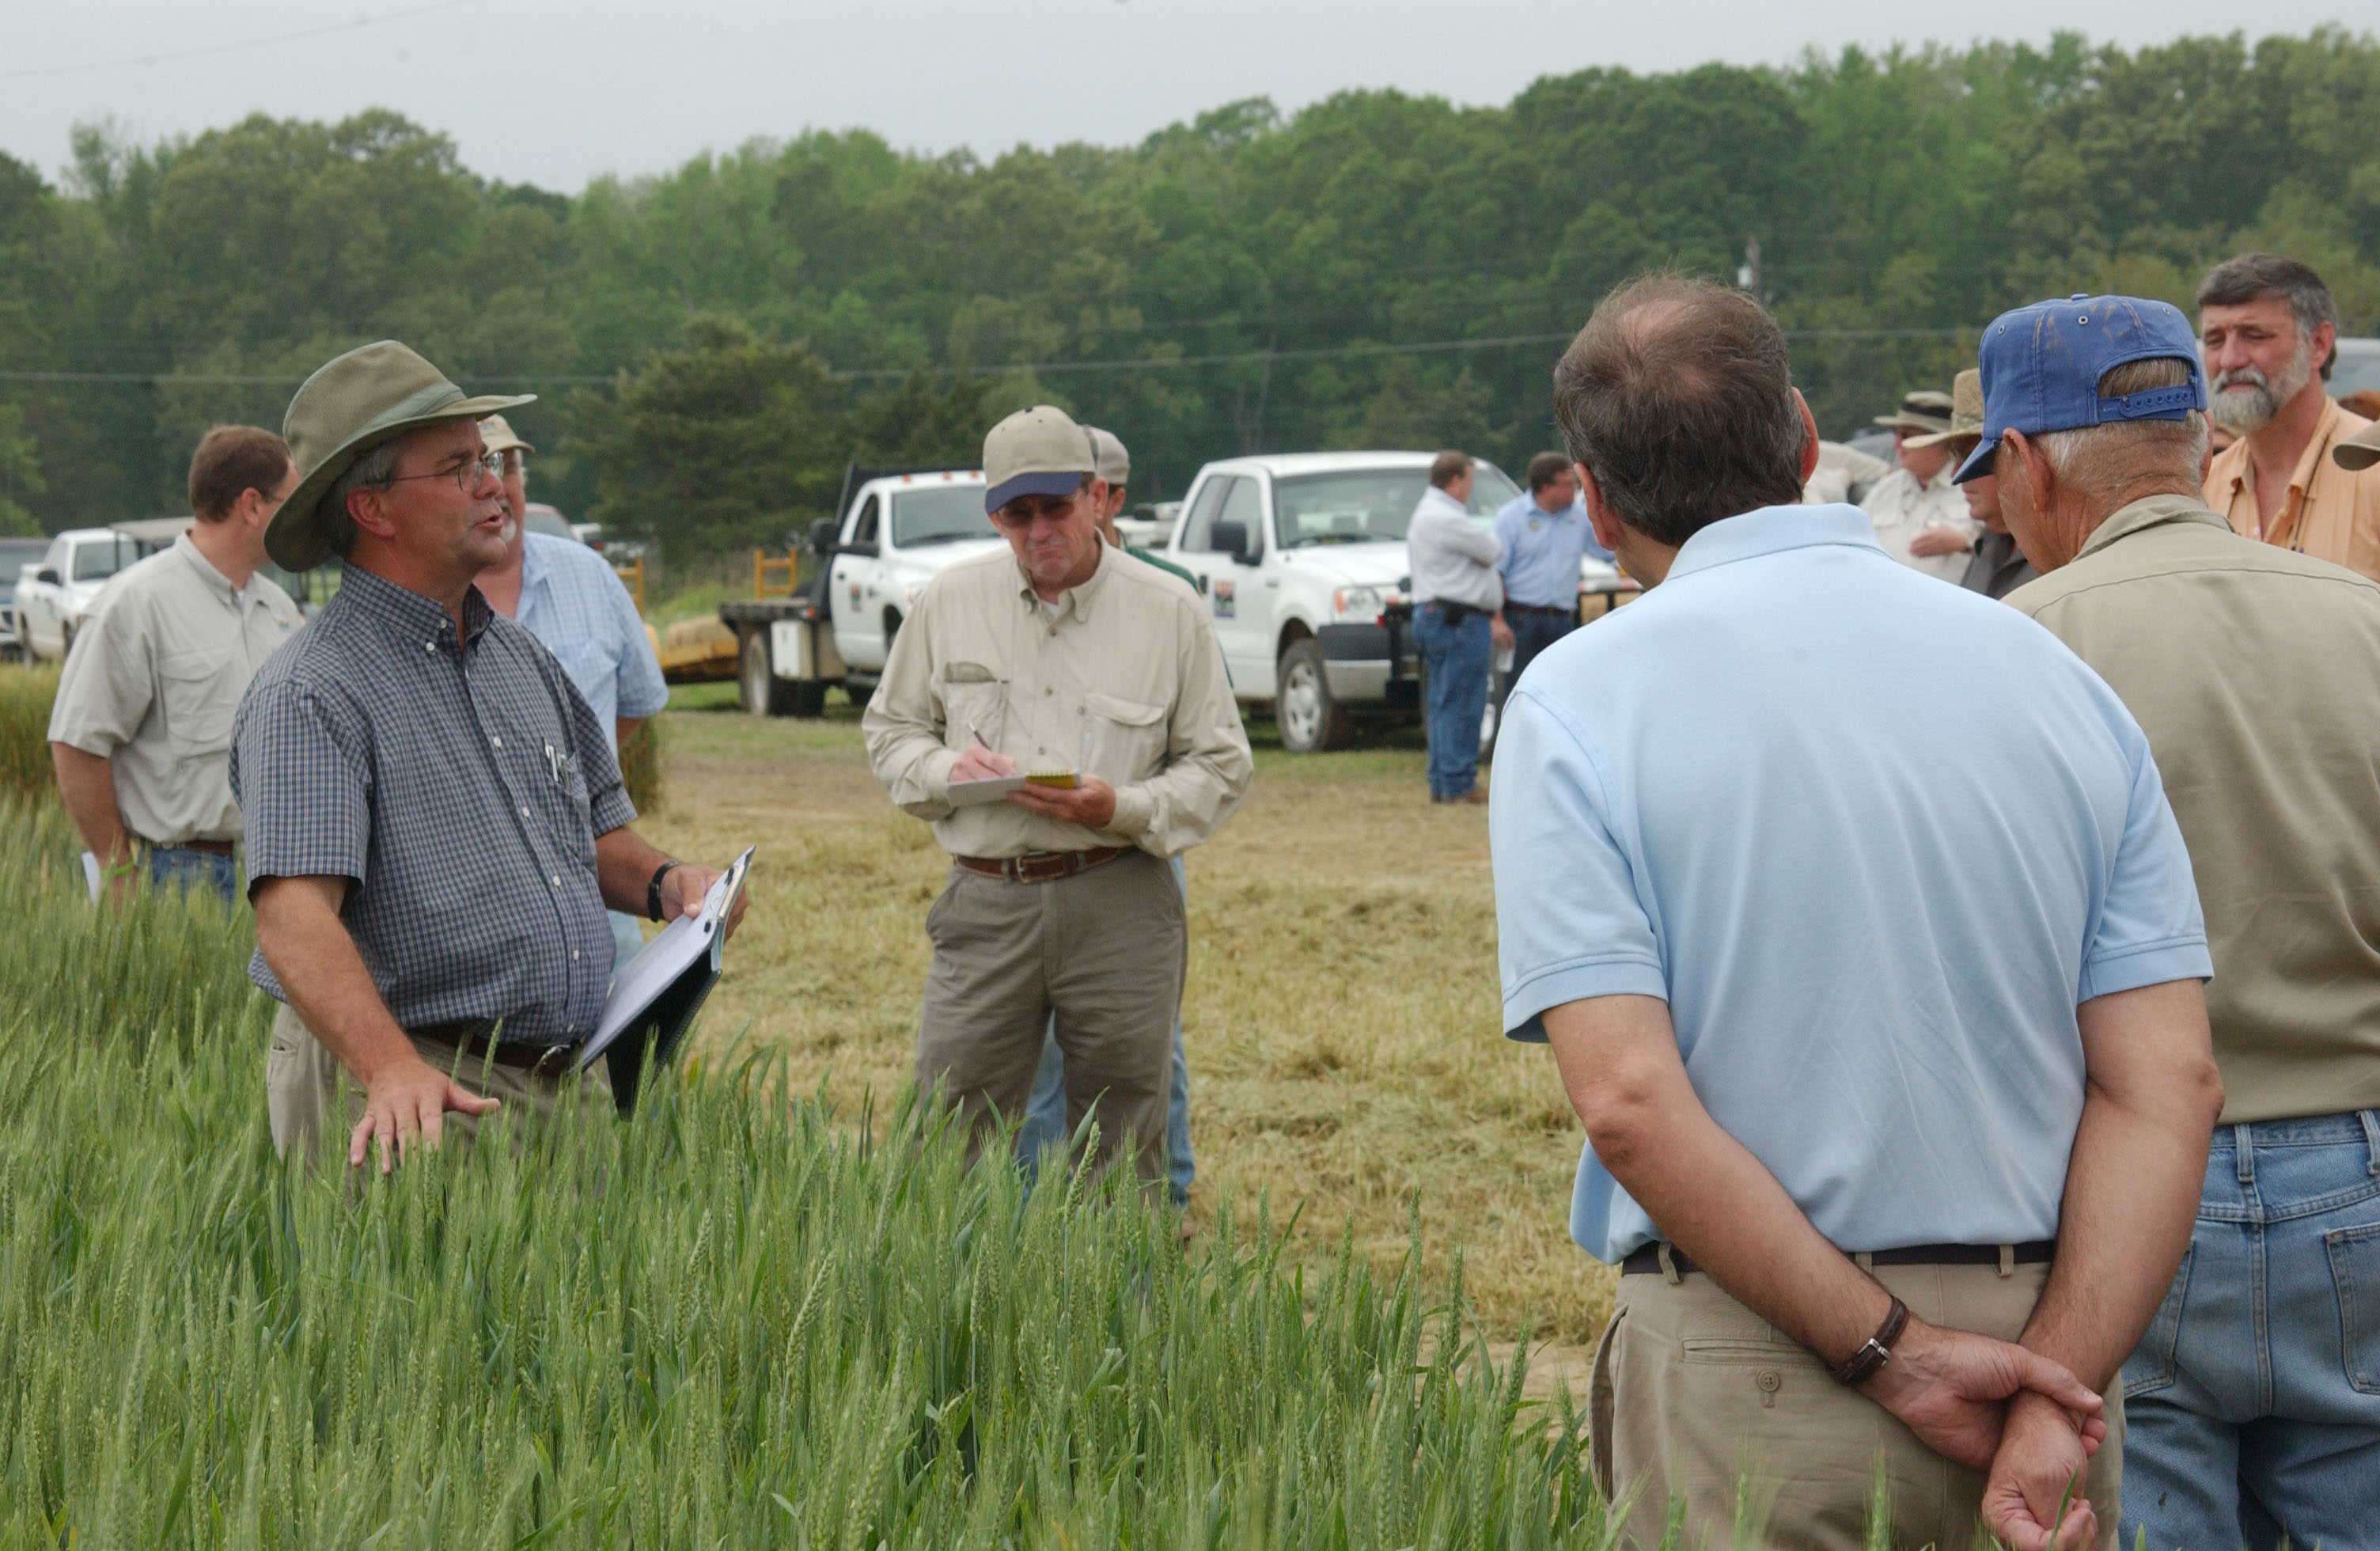 LSU AgCenter wheat breeder Steve Harrison talks to participants at a wheat field day held at